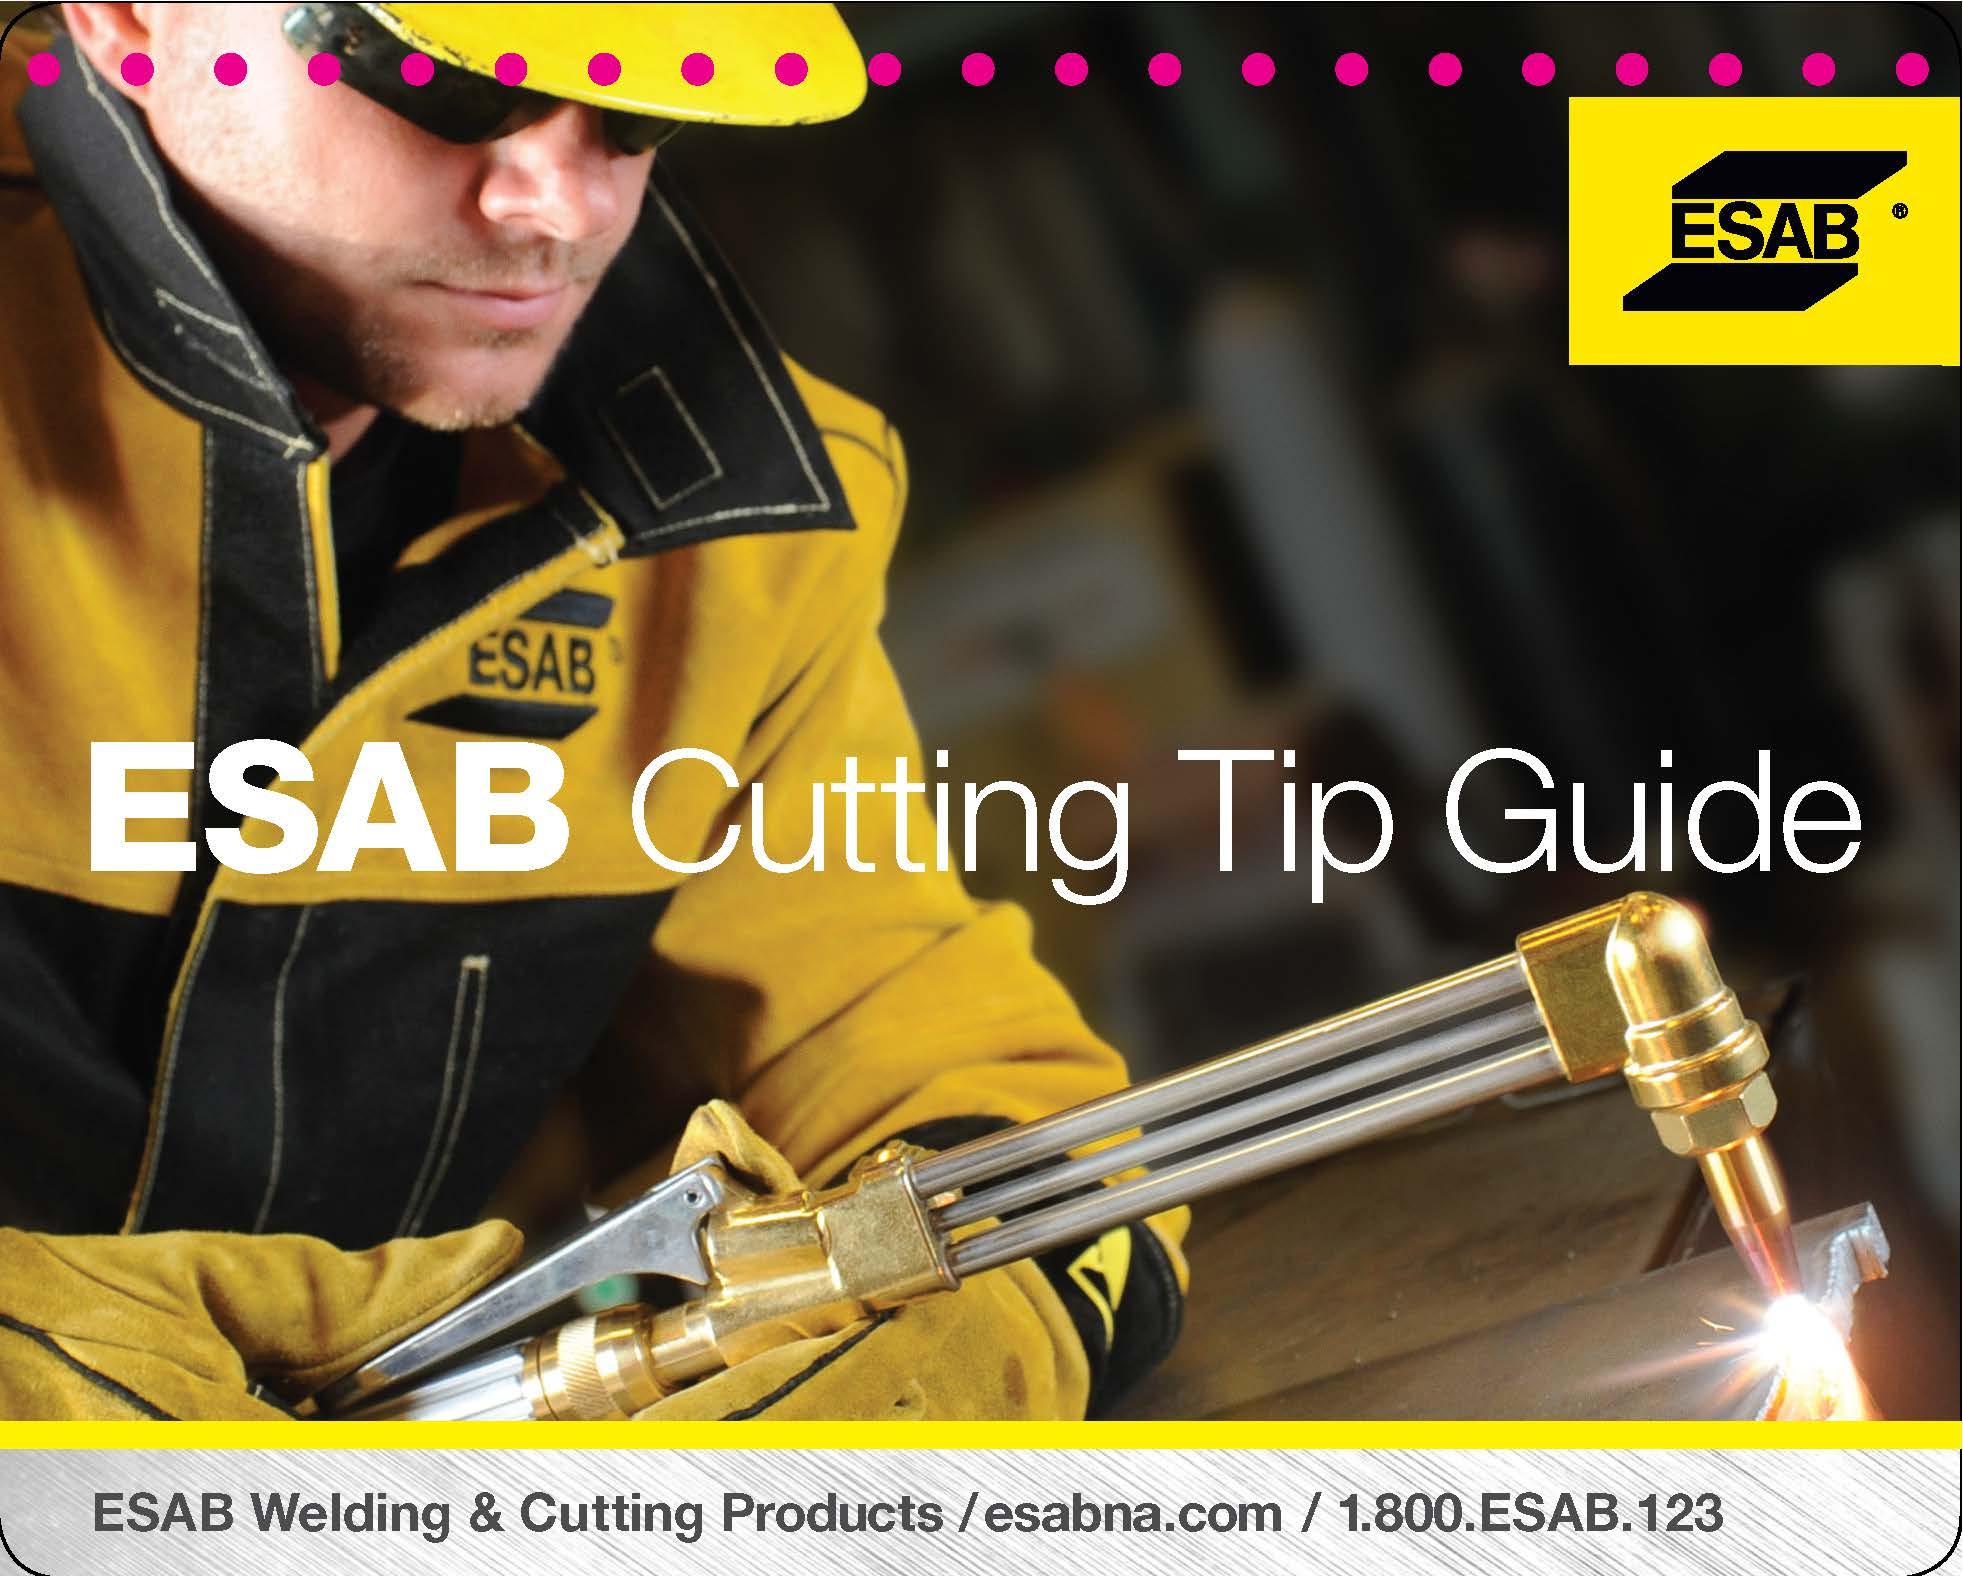 Esab Offers New Quick Reference Guide For Cutting Tip Selection